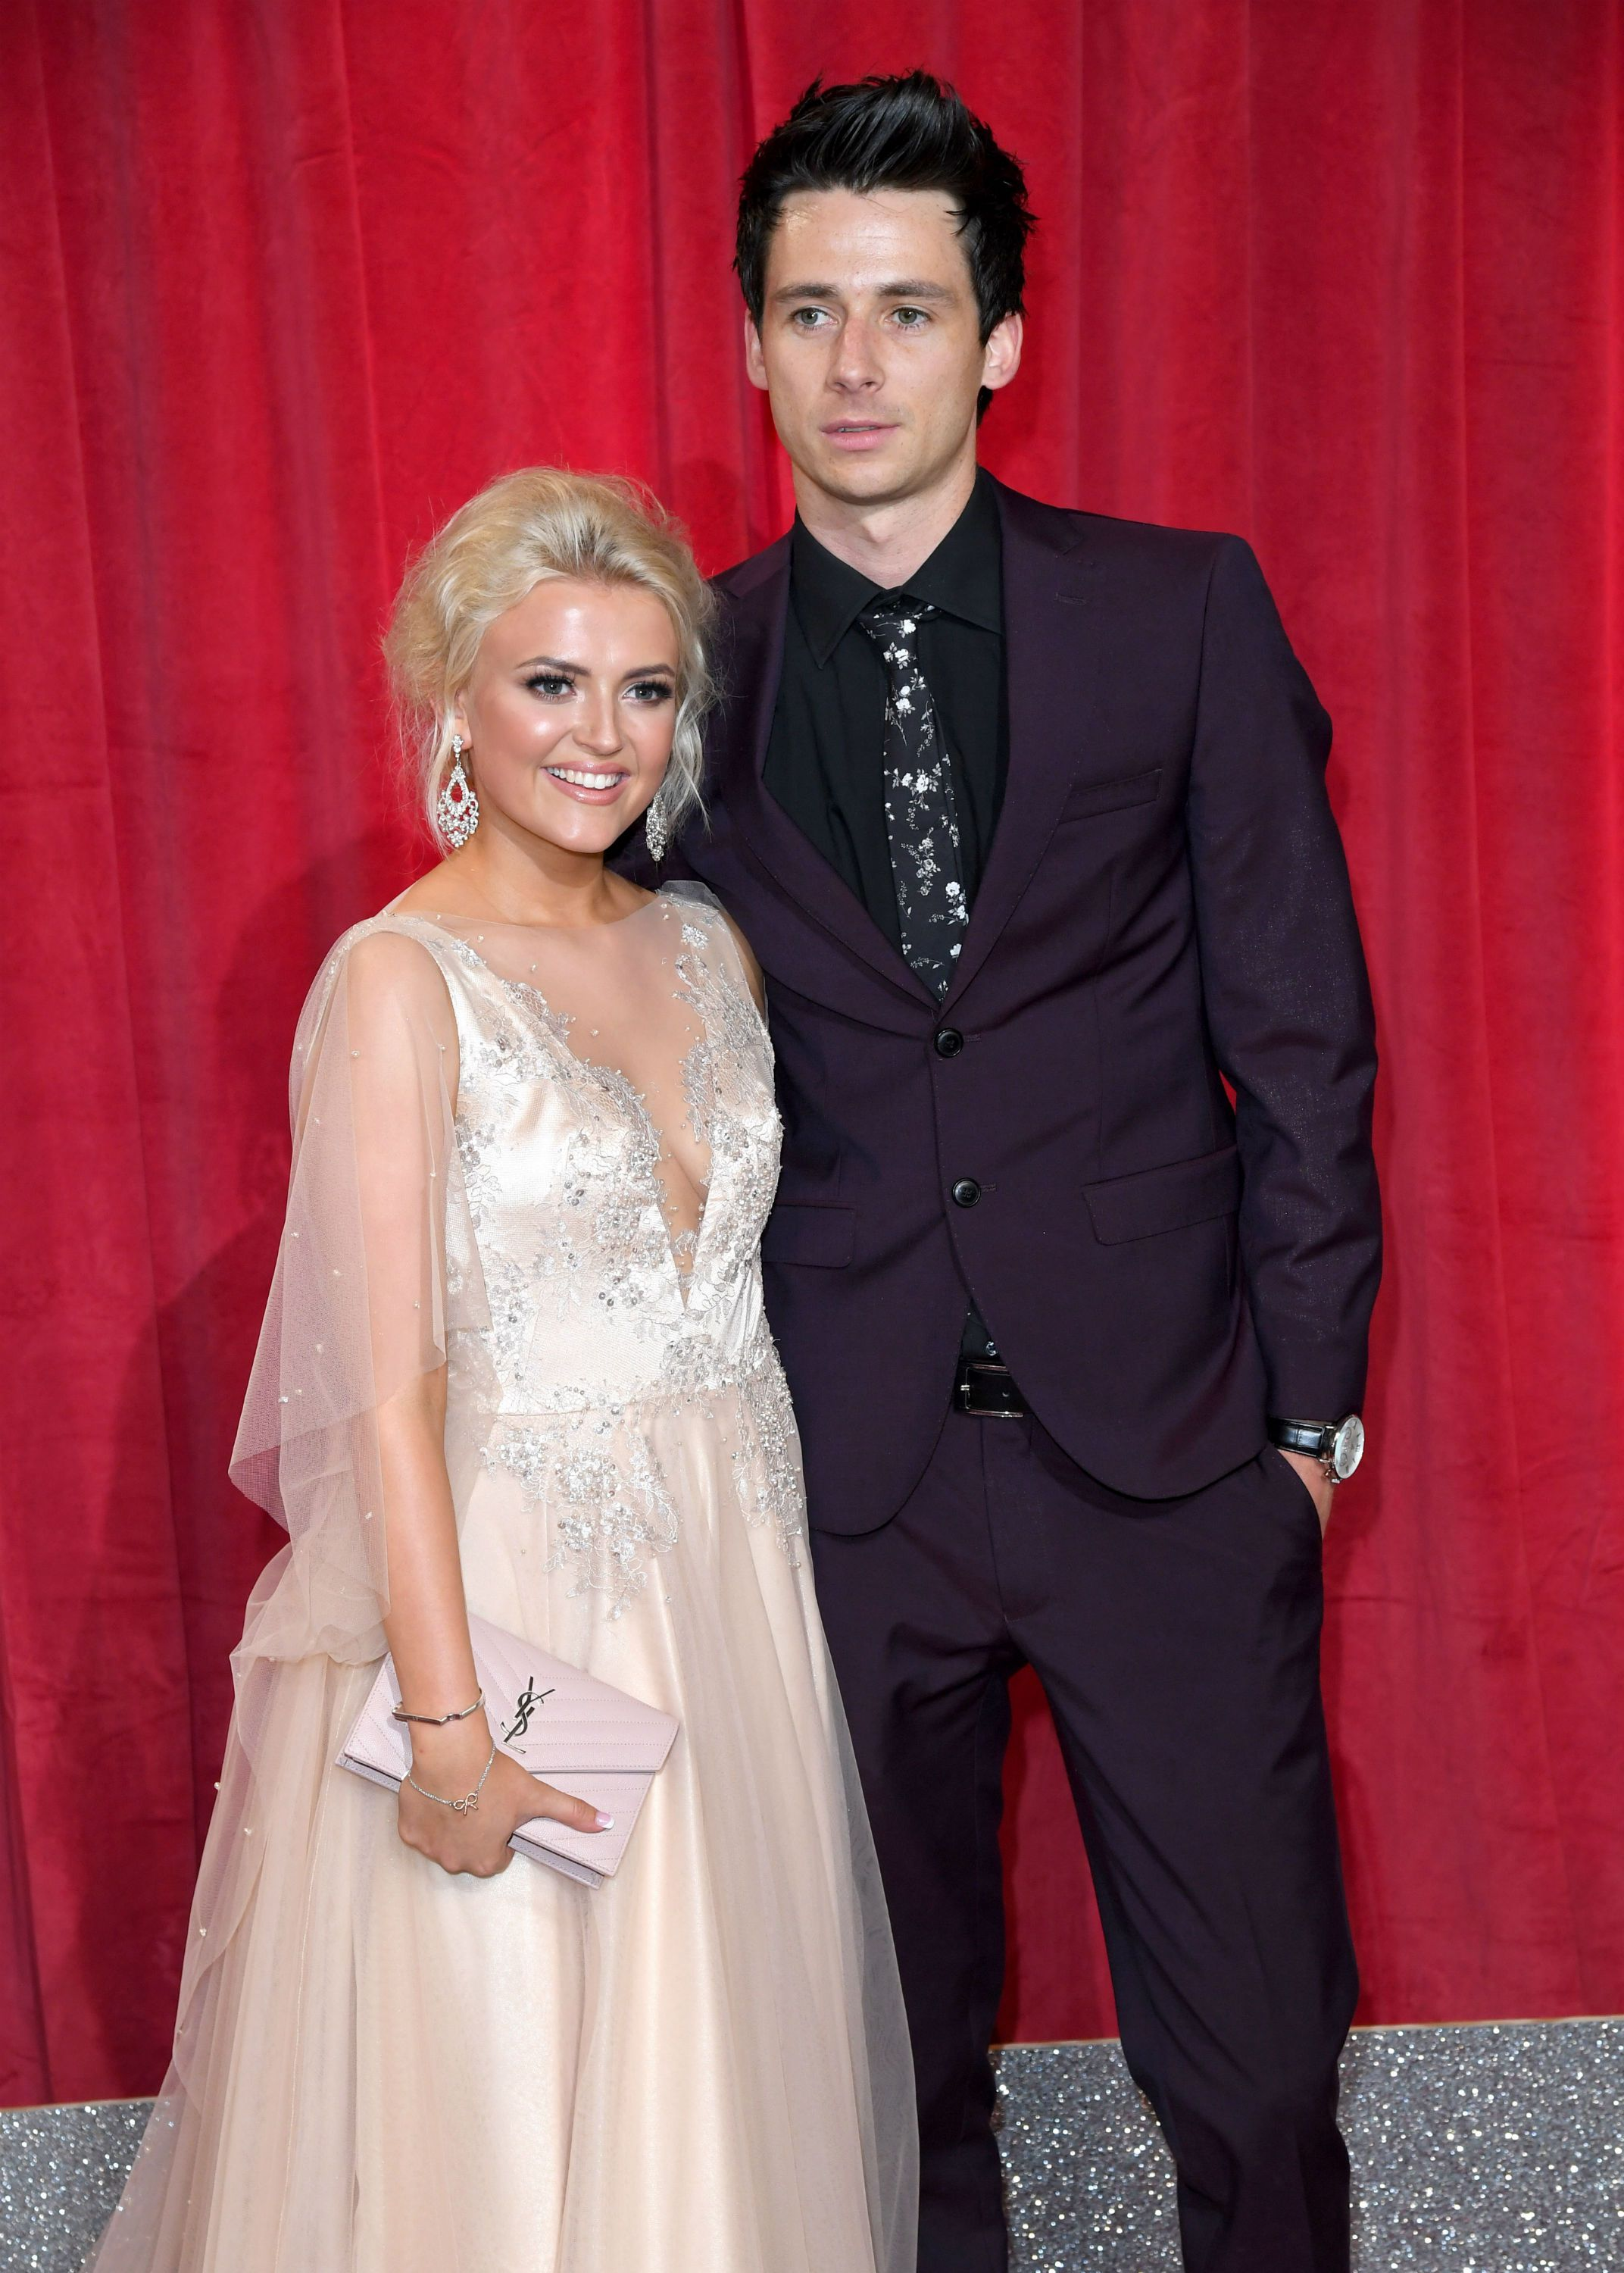 Coronation Street S Lucy Fallon Wants To Marry And Have Babies With Boyfriend Tom Leech